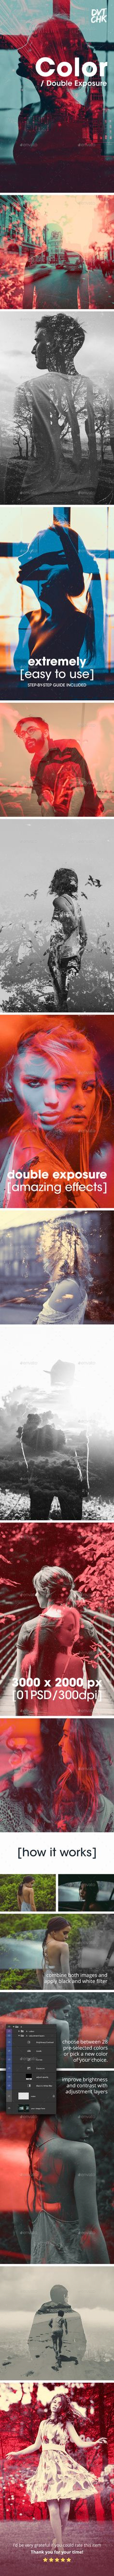 Color - Double Exposure Photoshop Photo Template - Photo Templates Graphics